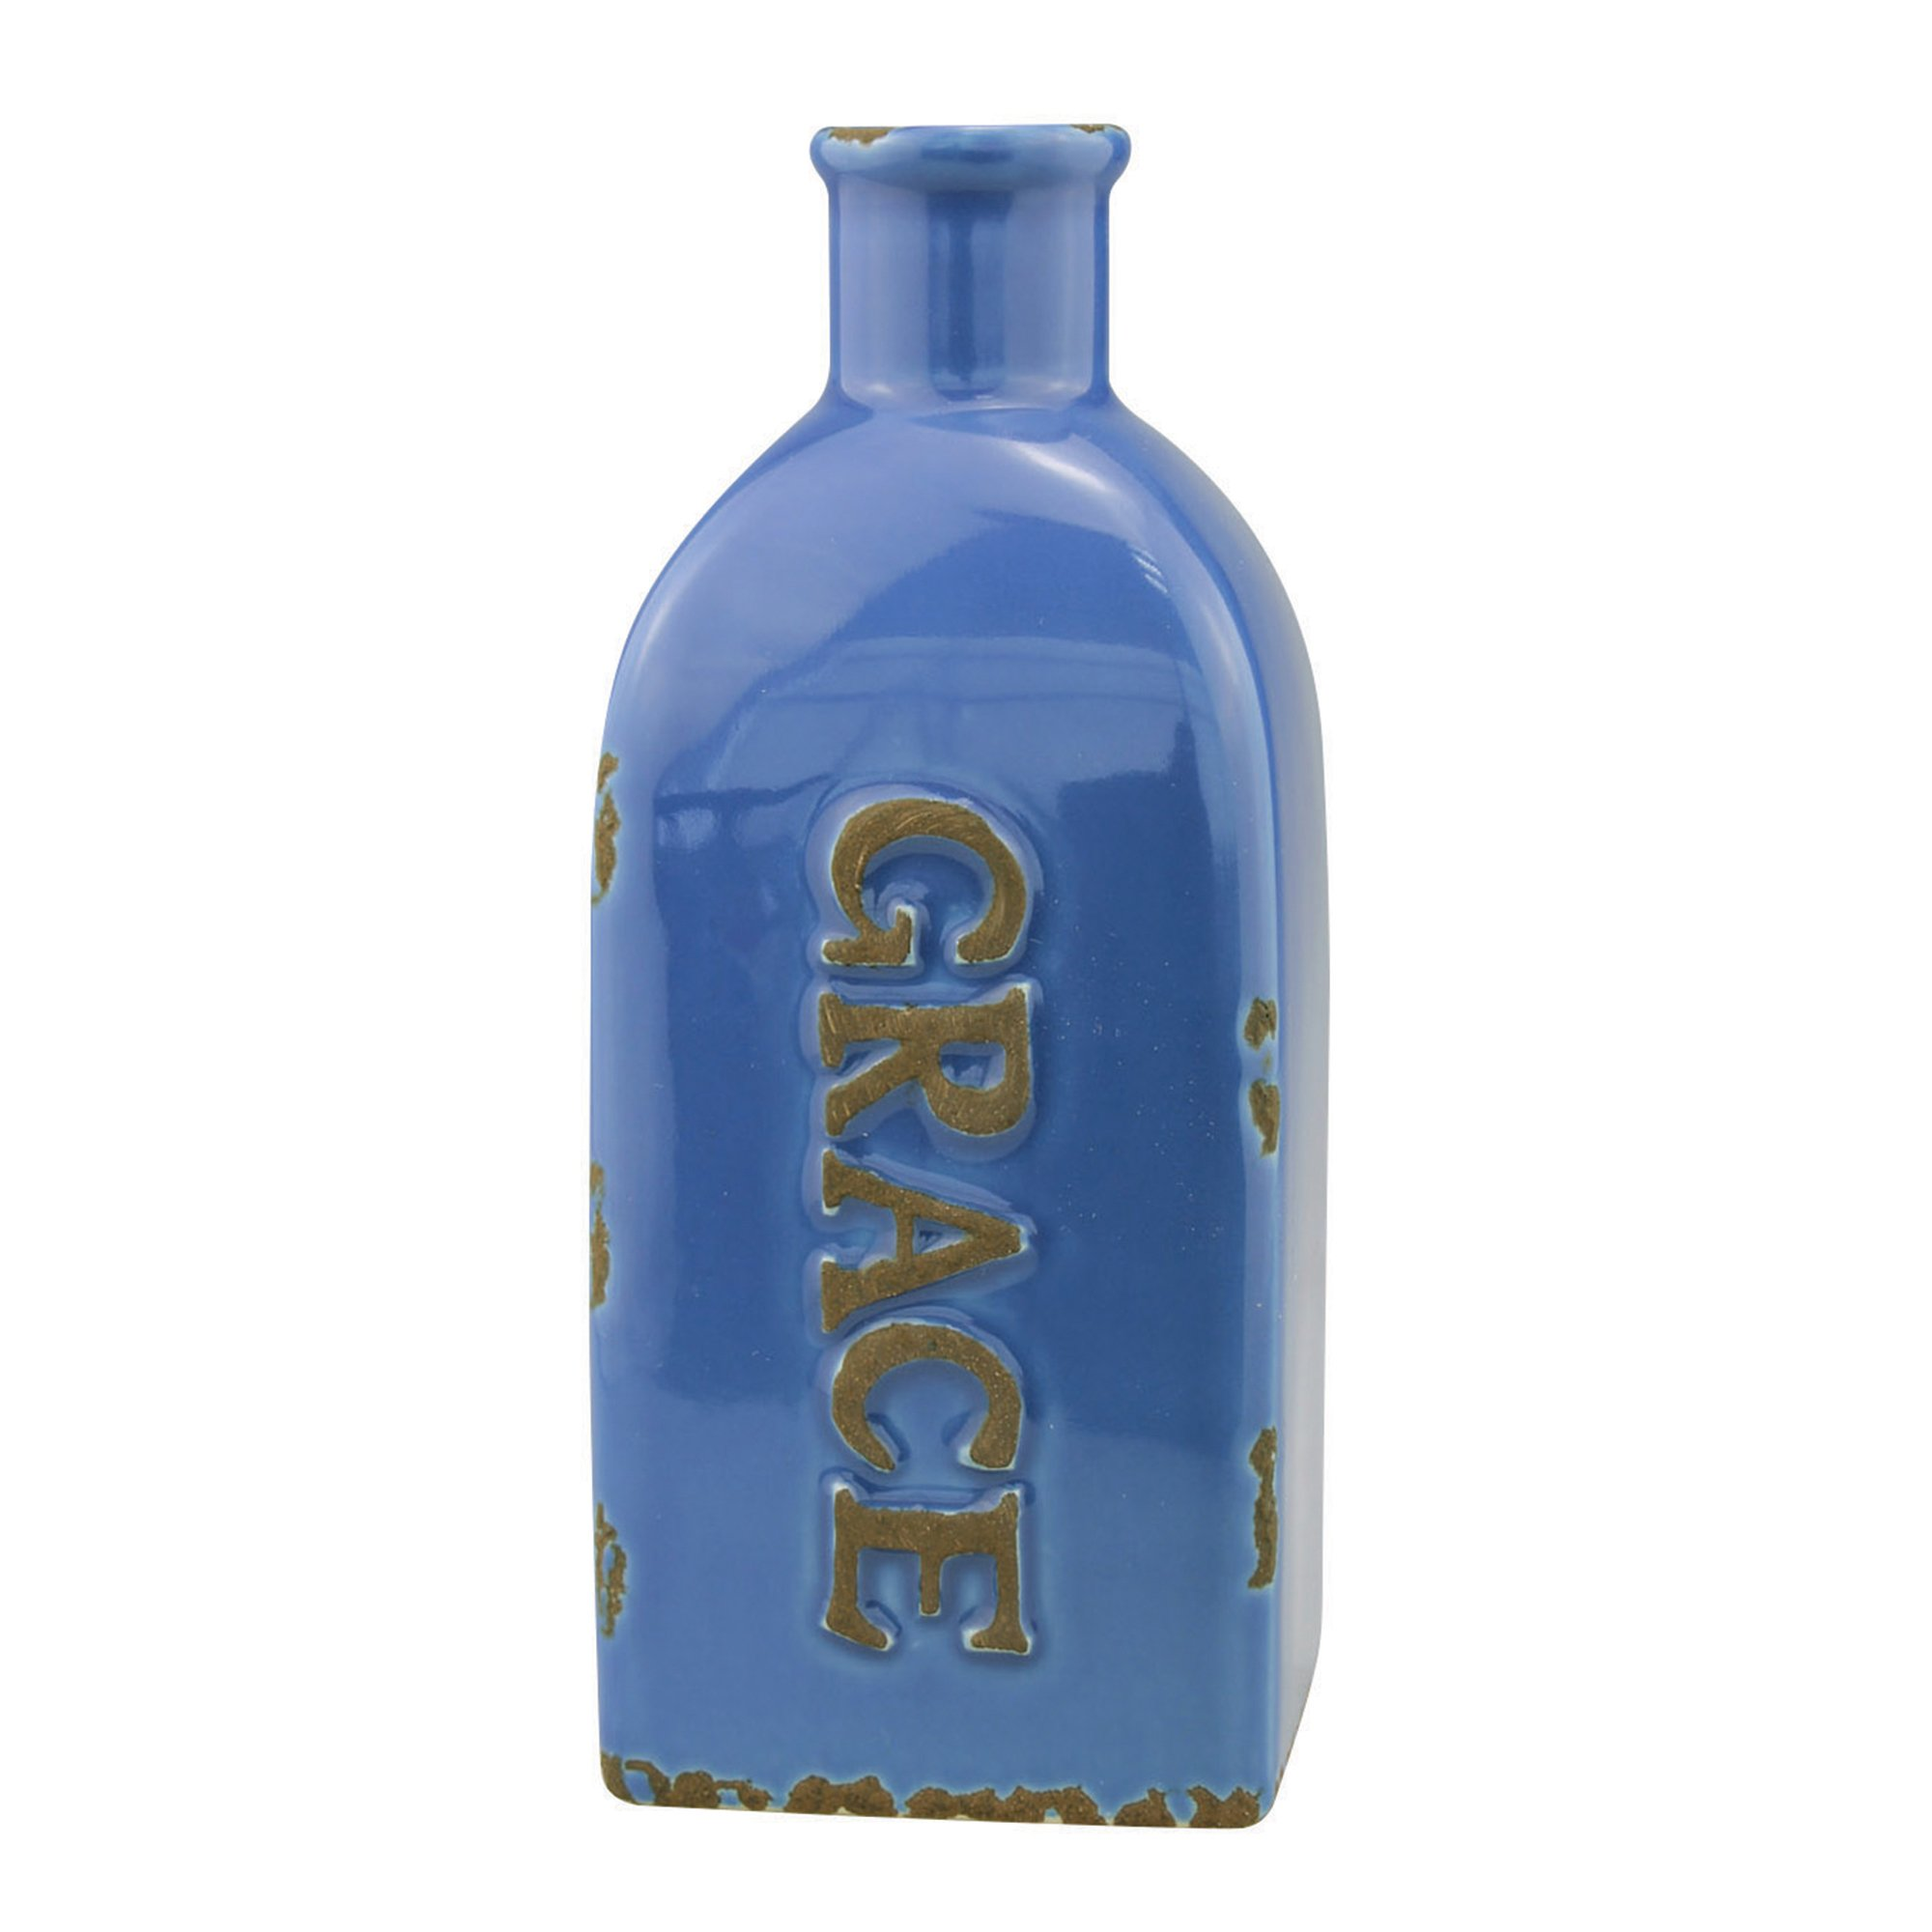 Stonebriar Decorative Antique Blue Ceramic Vase, For Floral Arrangements and Dried Flower Filler, Centerpiece for Coffee, Kitchen, and Dining Room Table